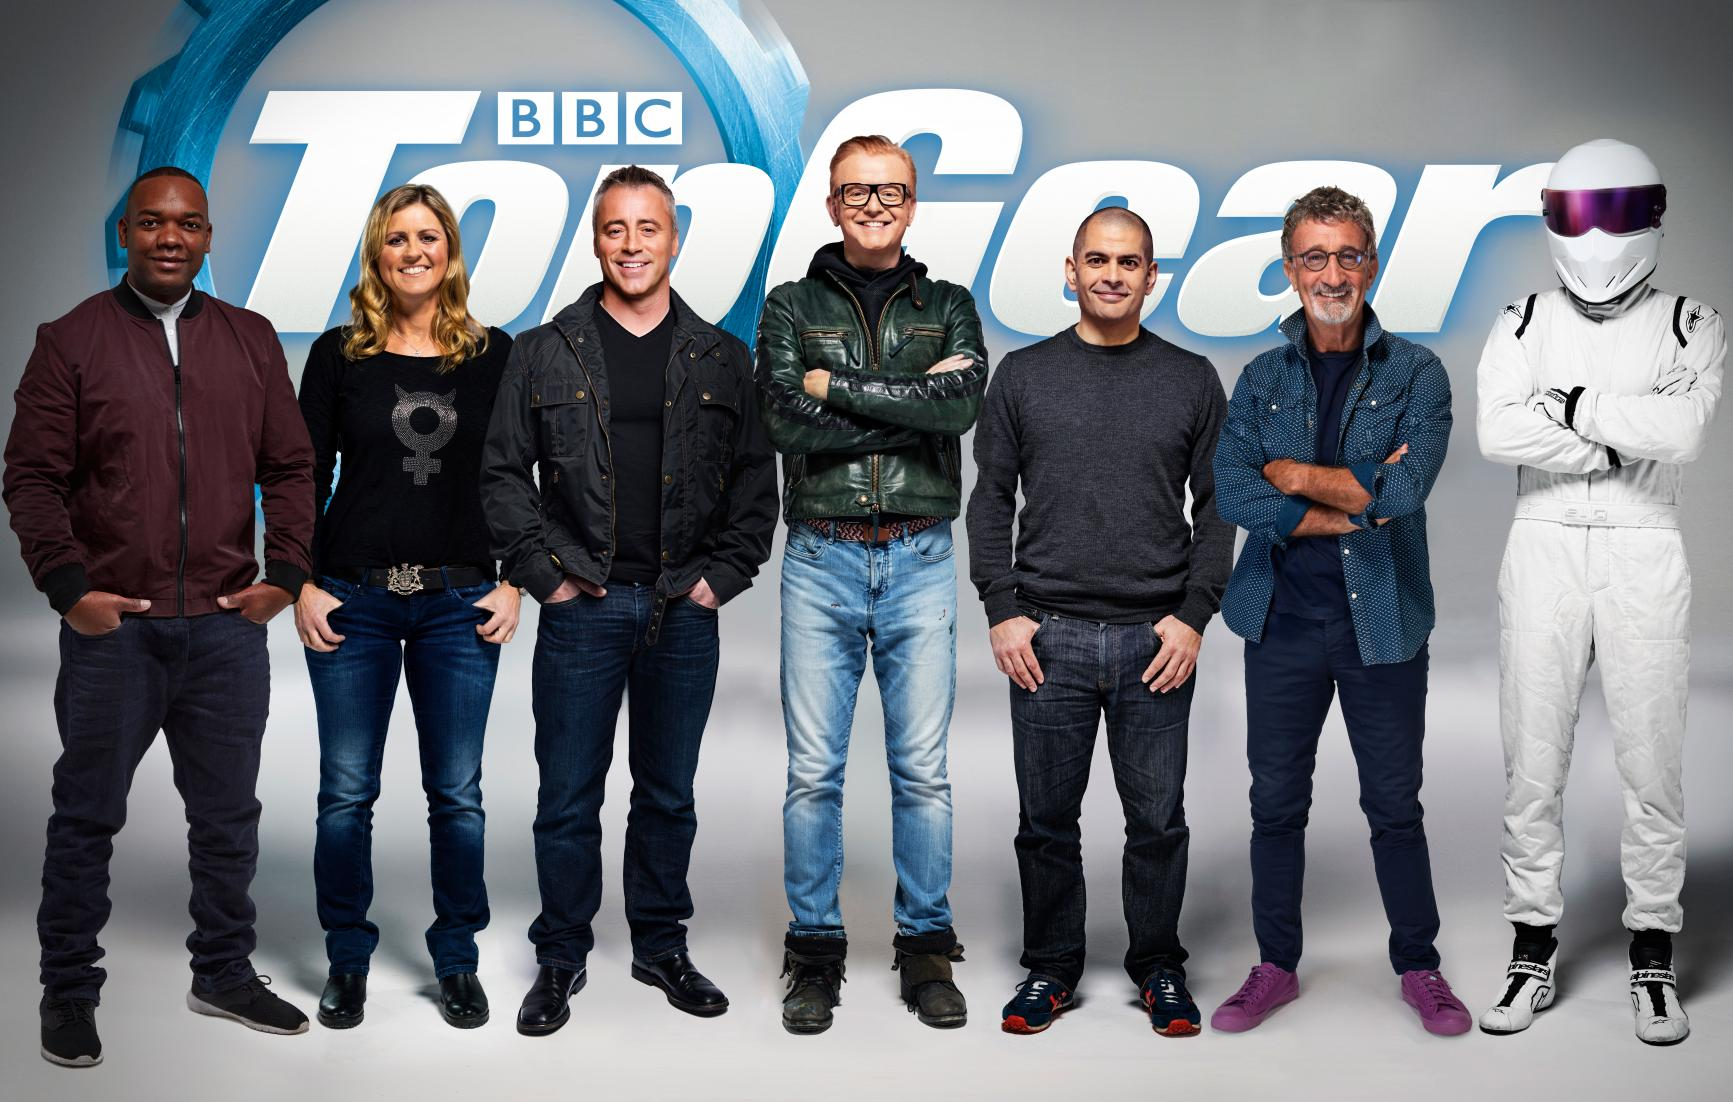 tg  line up maincloser af1 Chris Evans' Top Gear Actually Outperformed Clarkson's